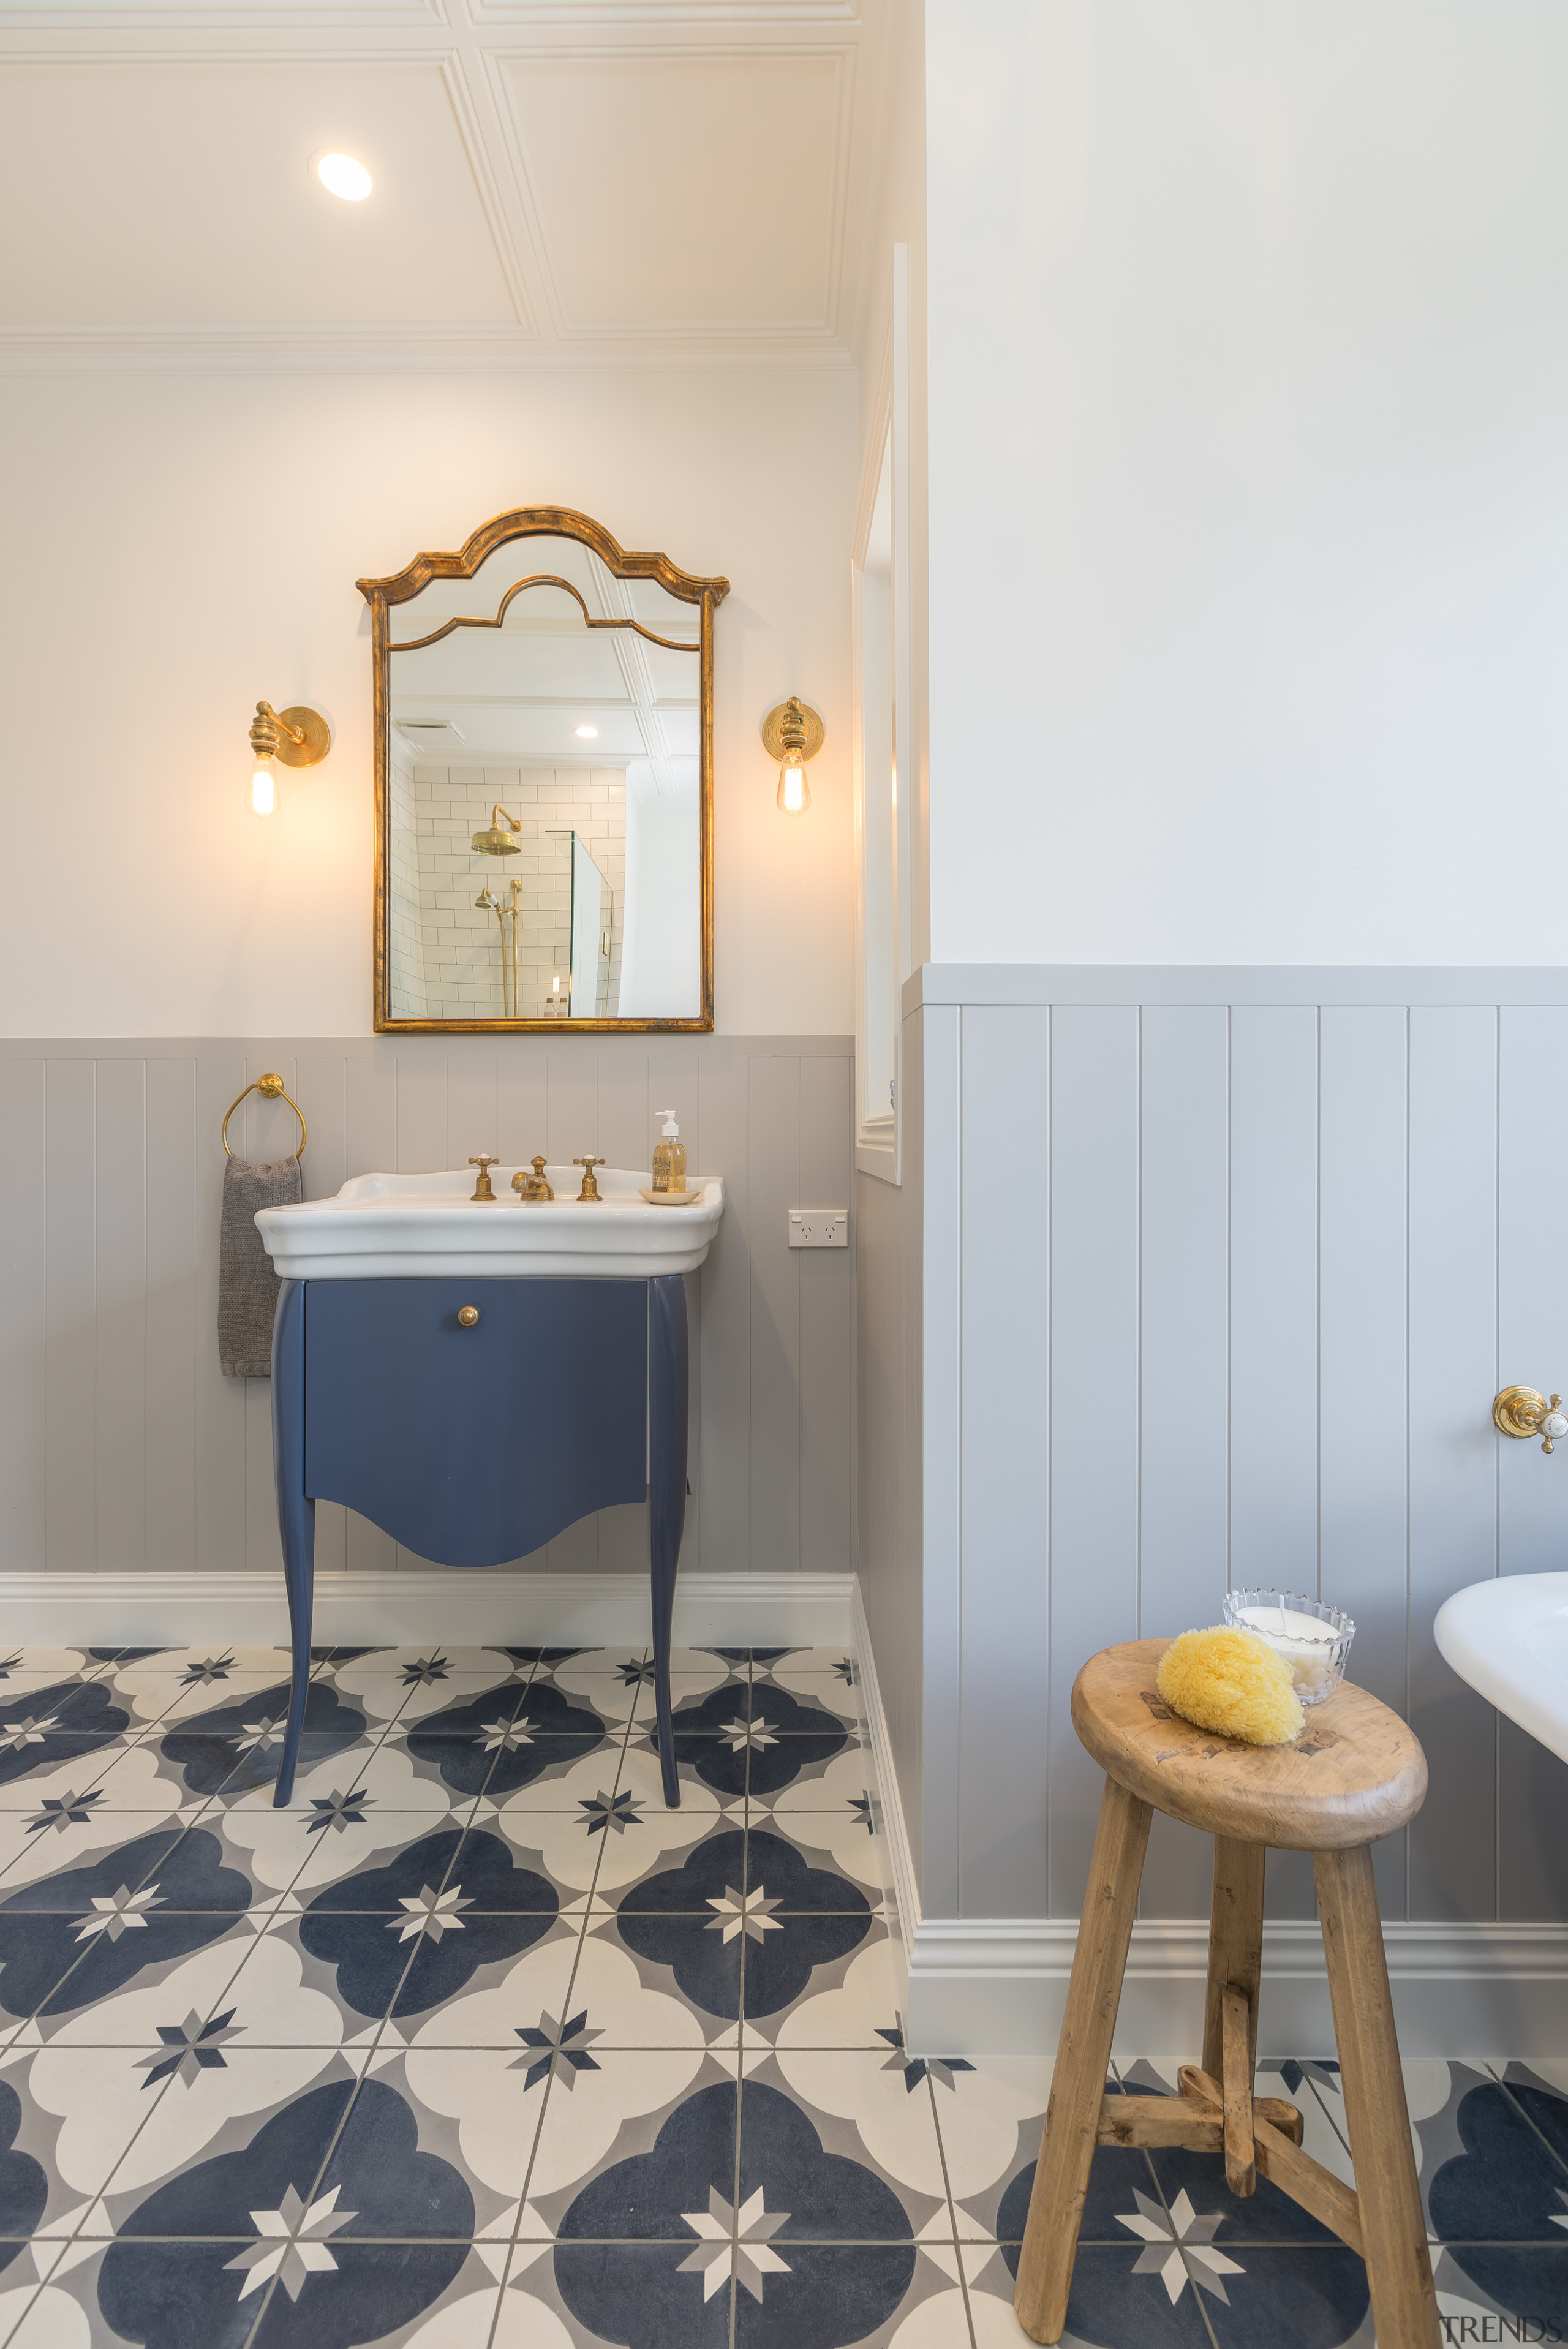 Traditional children's bathroom - architecture   bathroom   architecture, bathroom, building, ceiling, chair, floor, flooring, furniture, home, house, interior design, property, real estate, room, table, tile, yellow, gray